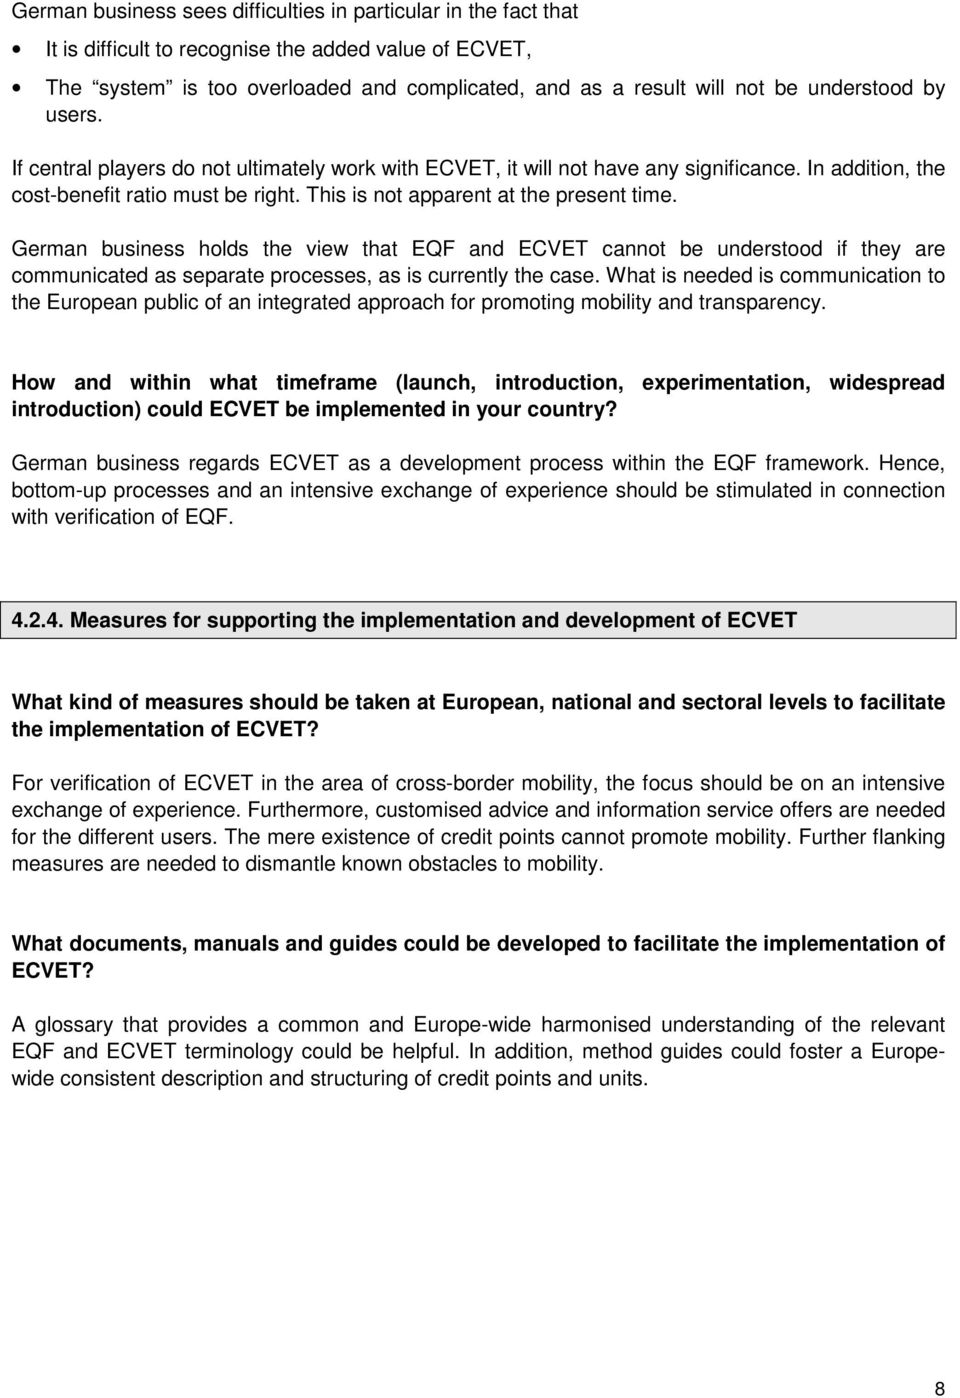 This is not apparent at the present time. German business holds the view that EQF and ECVET cannot be understood if they are communicated as separate processes, as is currently the case.